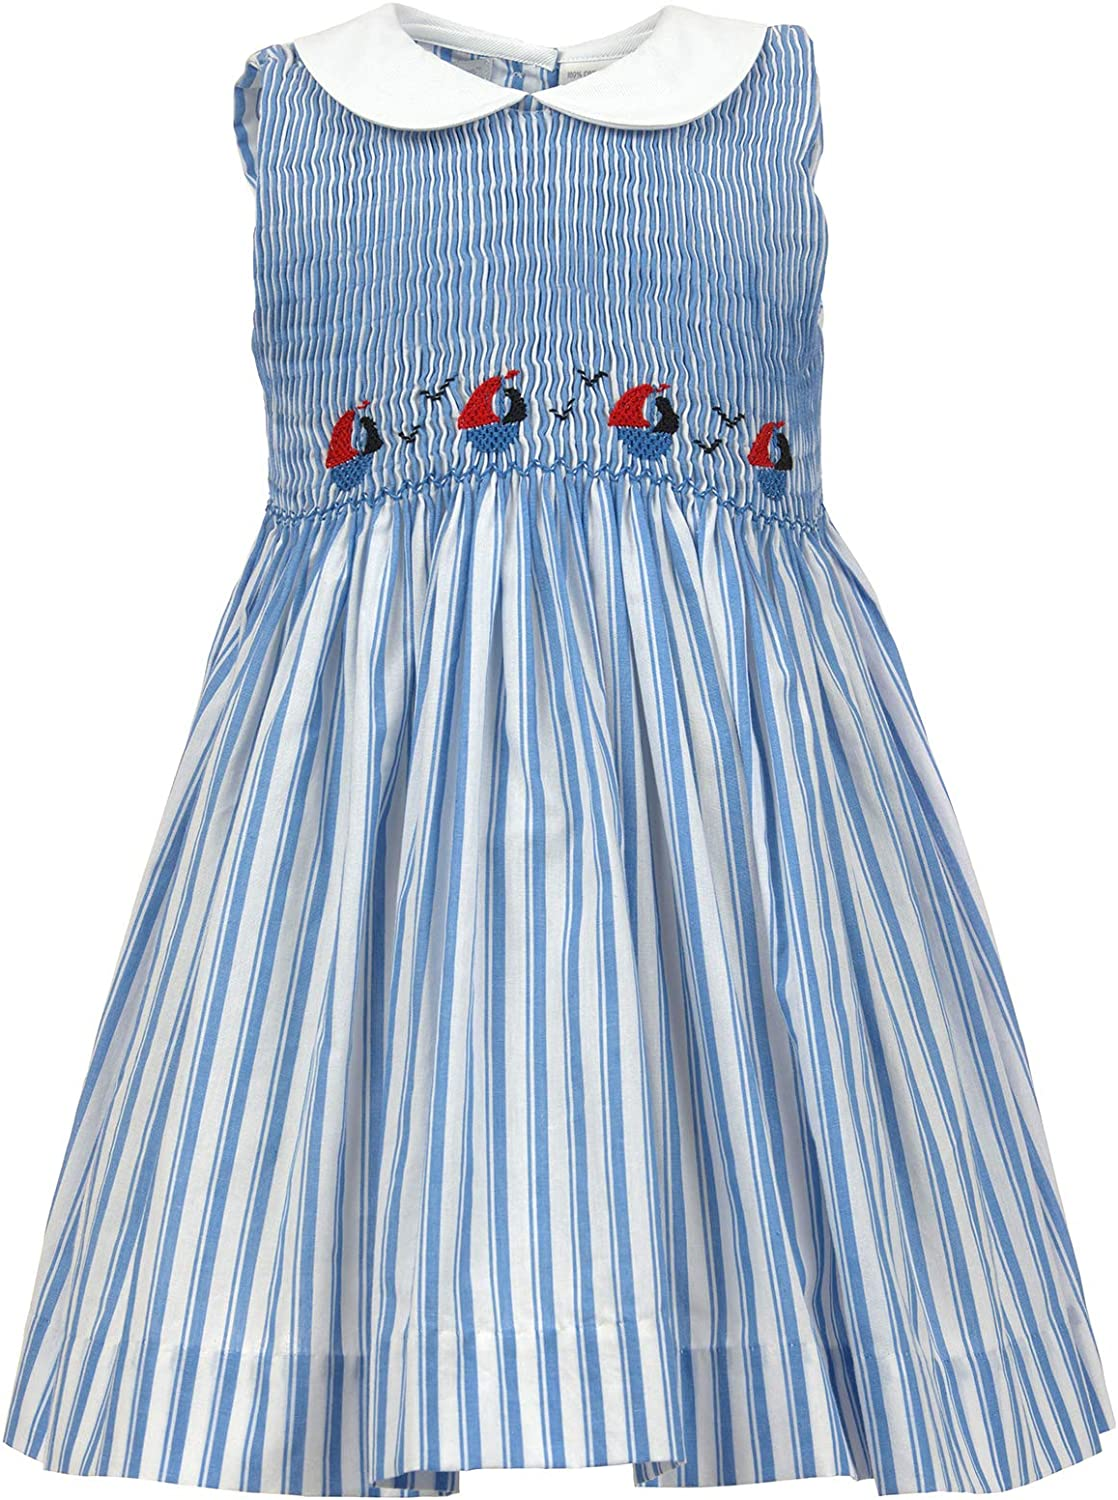 Carriage Boutique Girls Dress Sleeveless Hand Smocked Summer Nautical and Independence Day Dresses